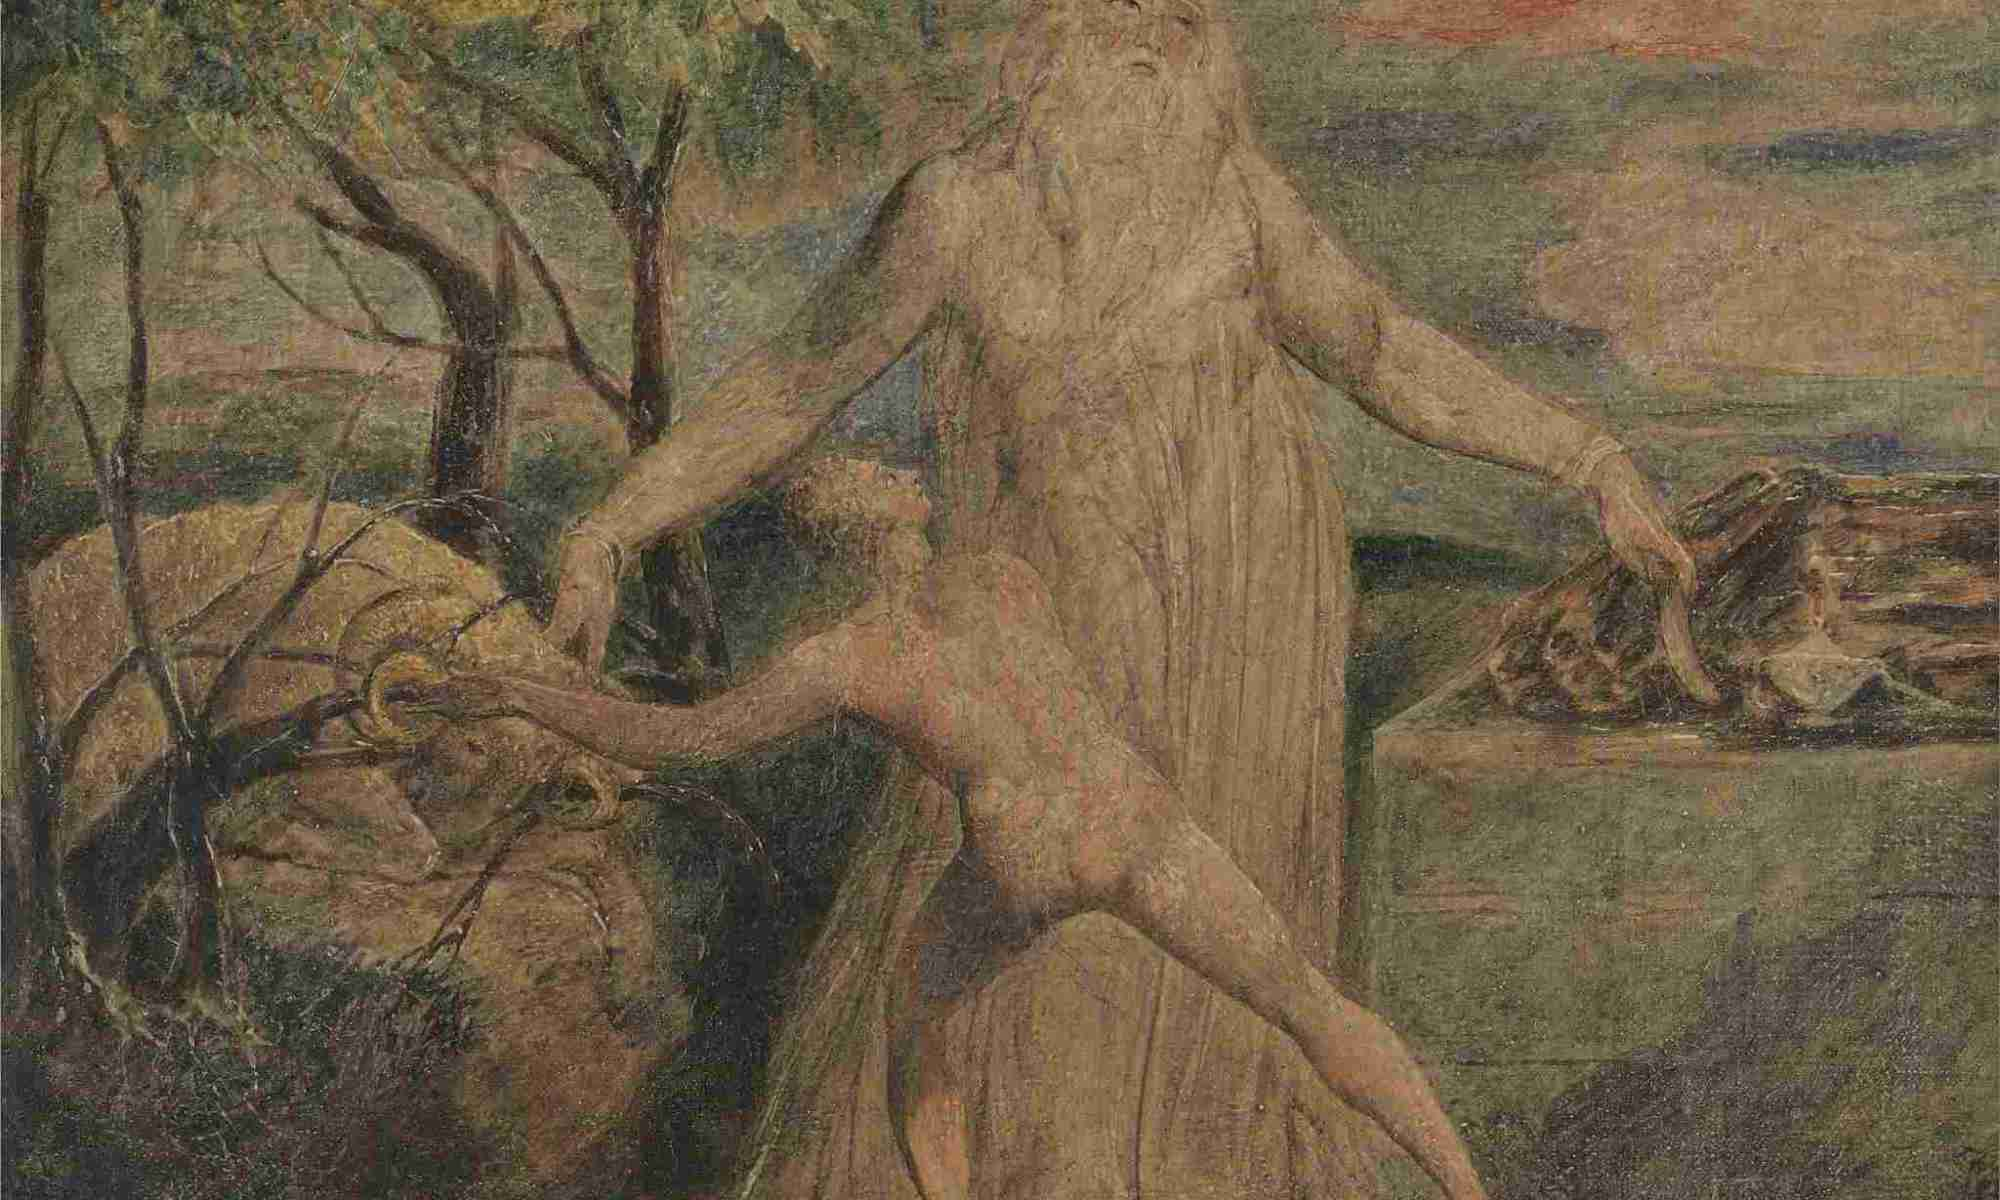 Isaac being sacrificed by Abraham